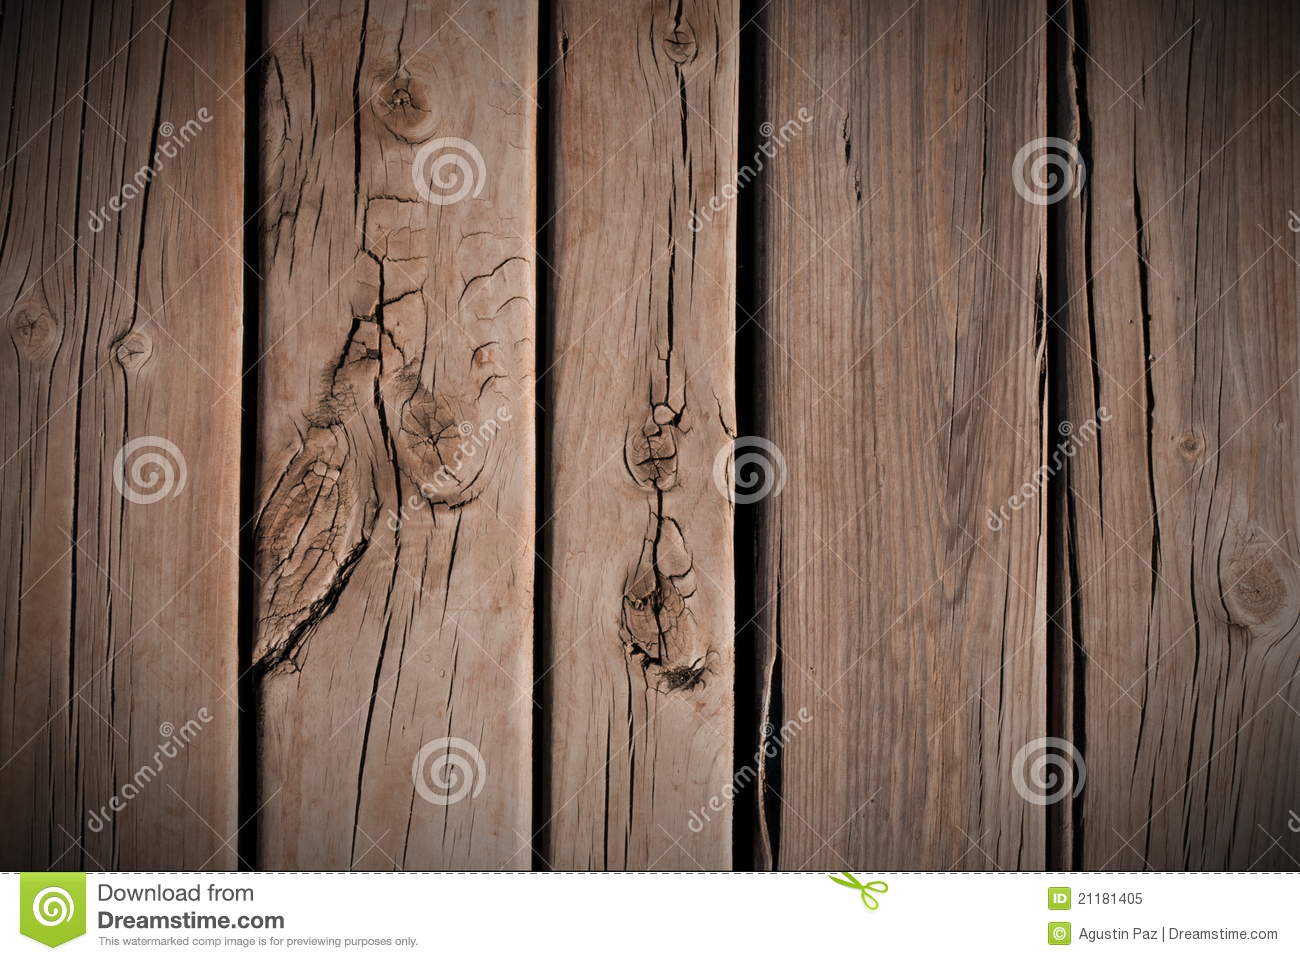 Floorboards with knots